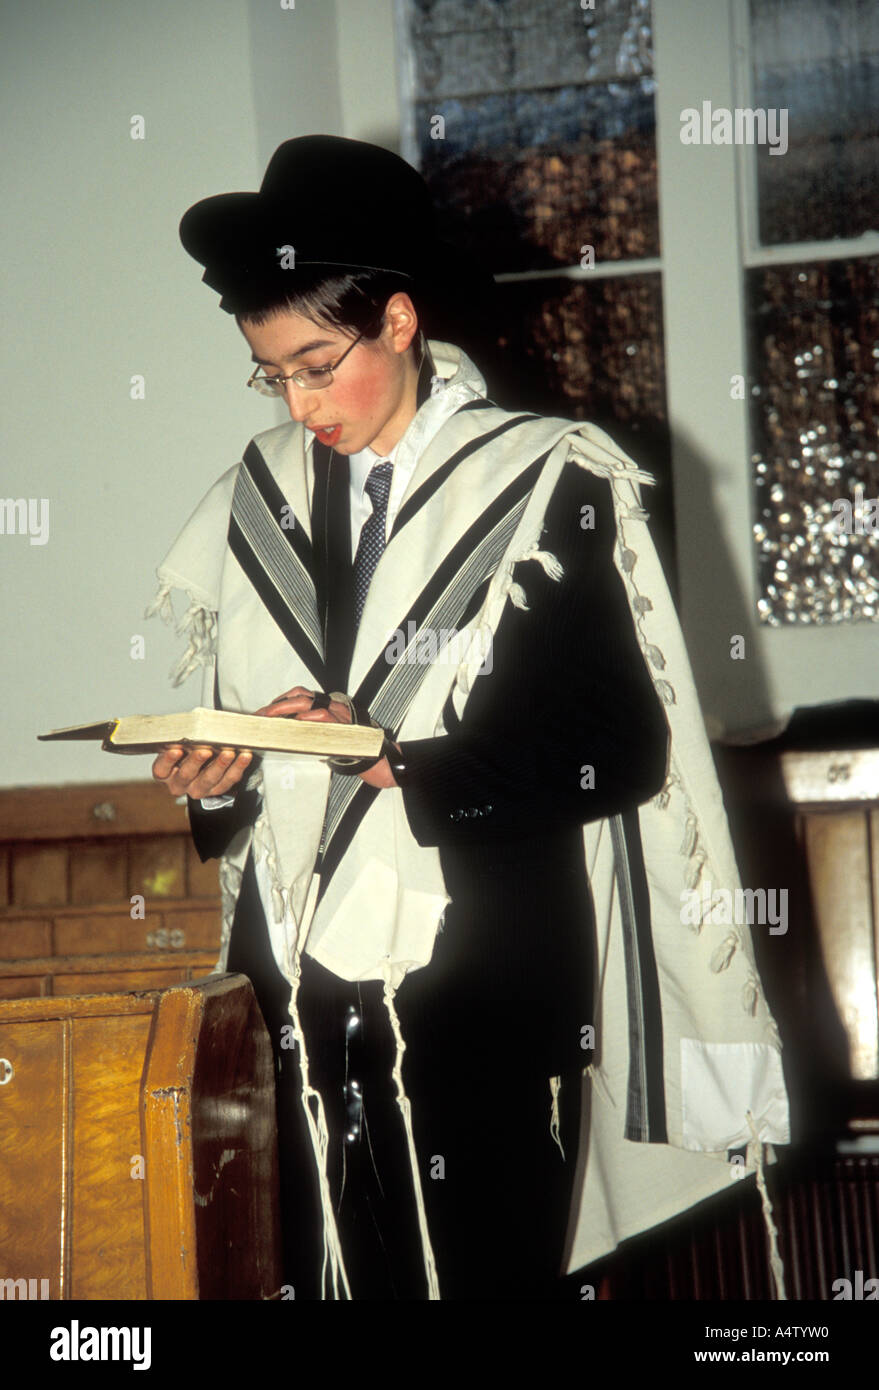 Young Jewish man wearing a tallit reads from a torah in the synagogue JU1225PG - Stock Image